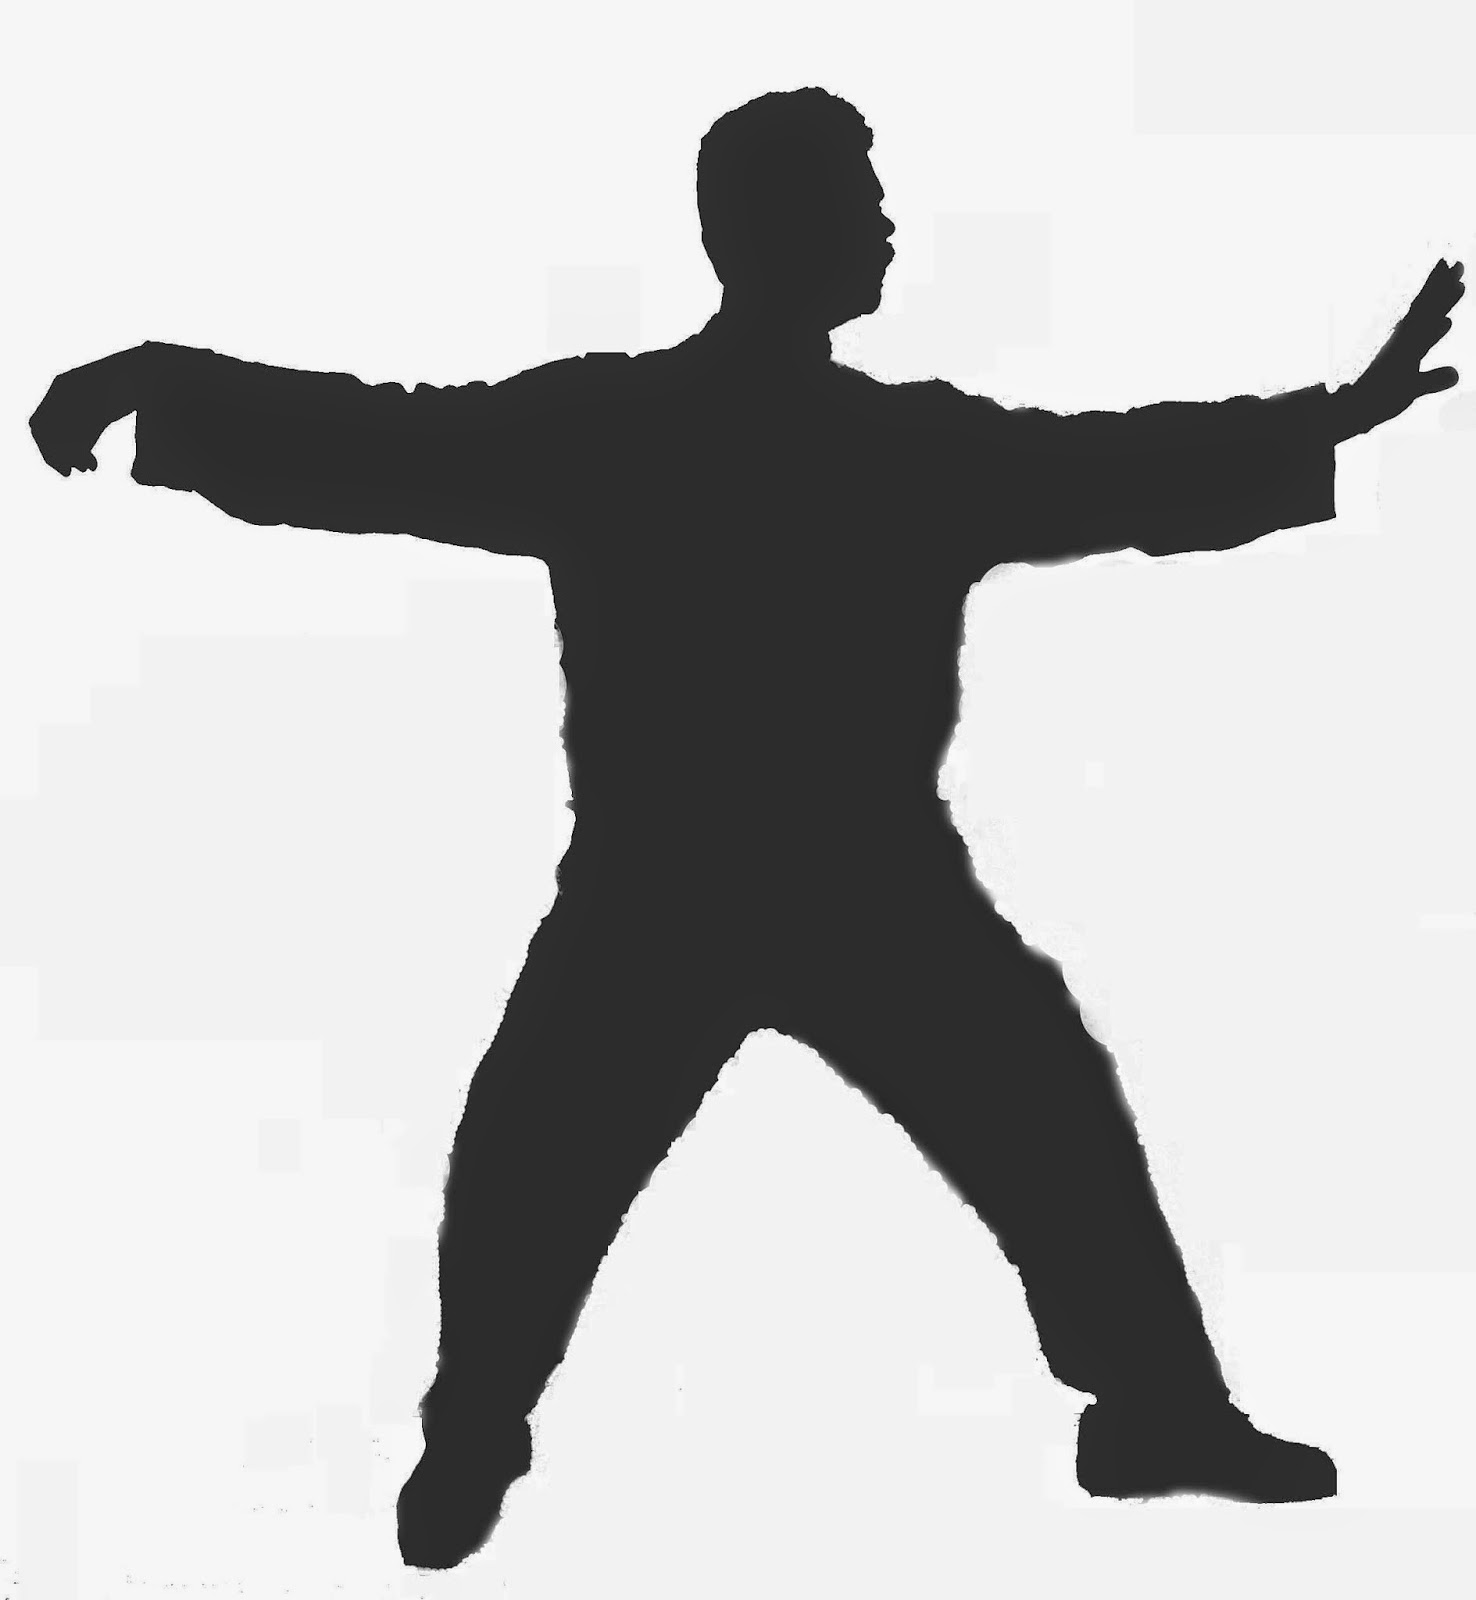 Image Gallery of Qigong Clipart.